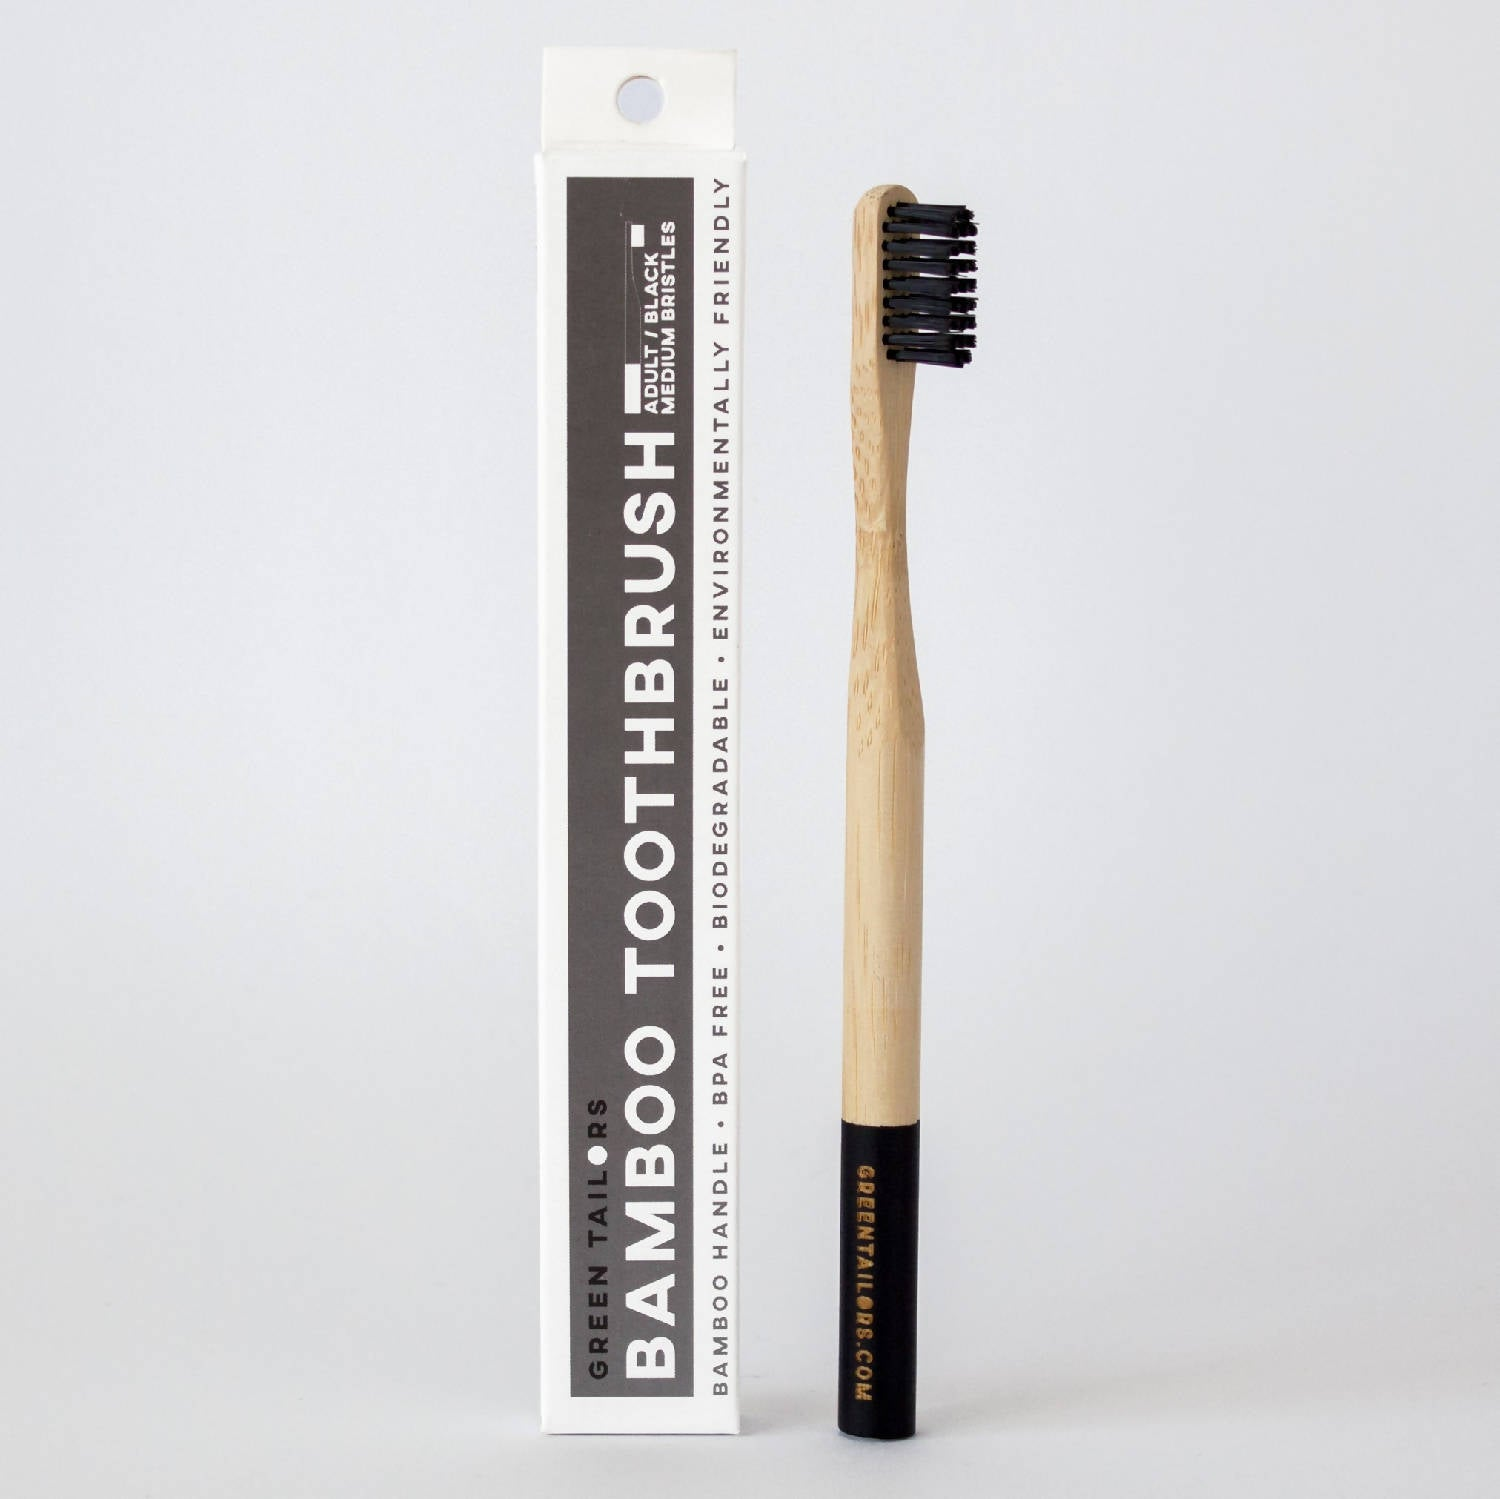 BAMBOO TOOTHBRUSH | Adult | Black | Medium bristles